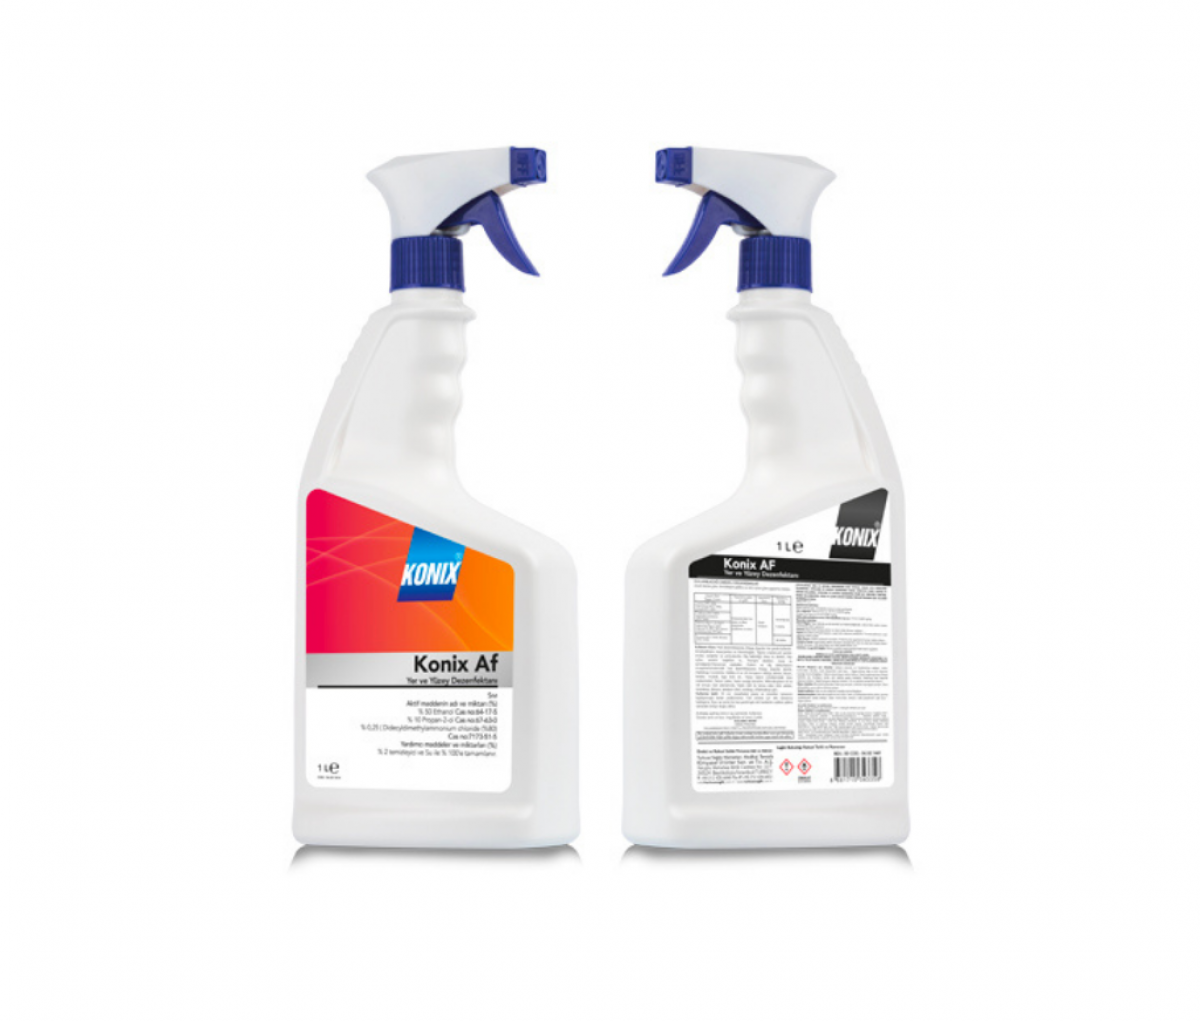 TKZ Konix AF Floor and Surface Disinfectant Spray 1L